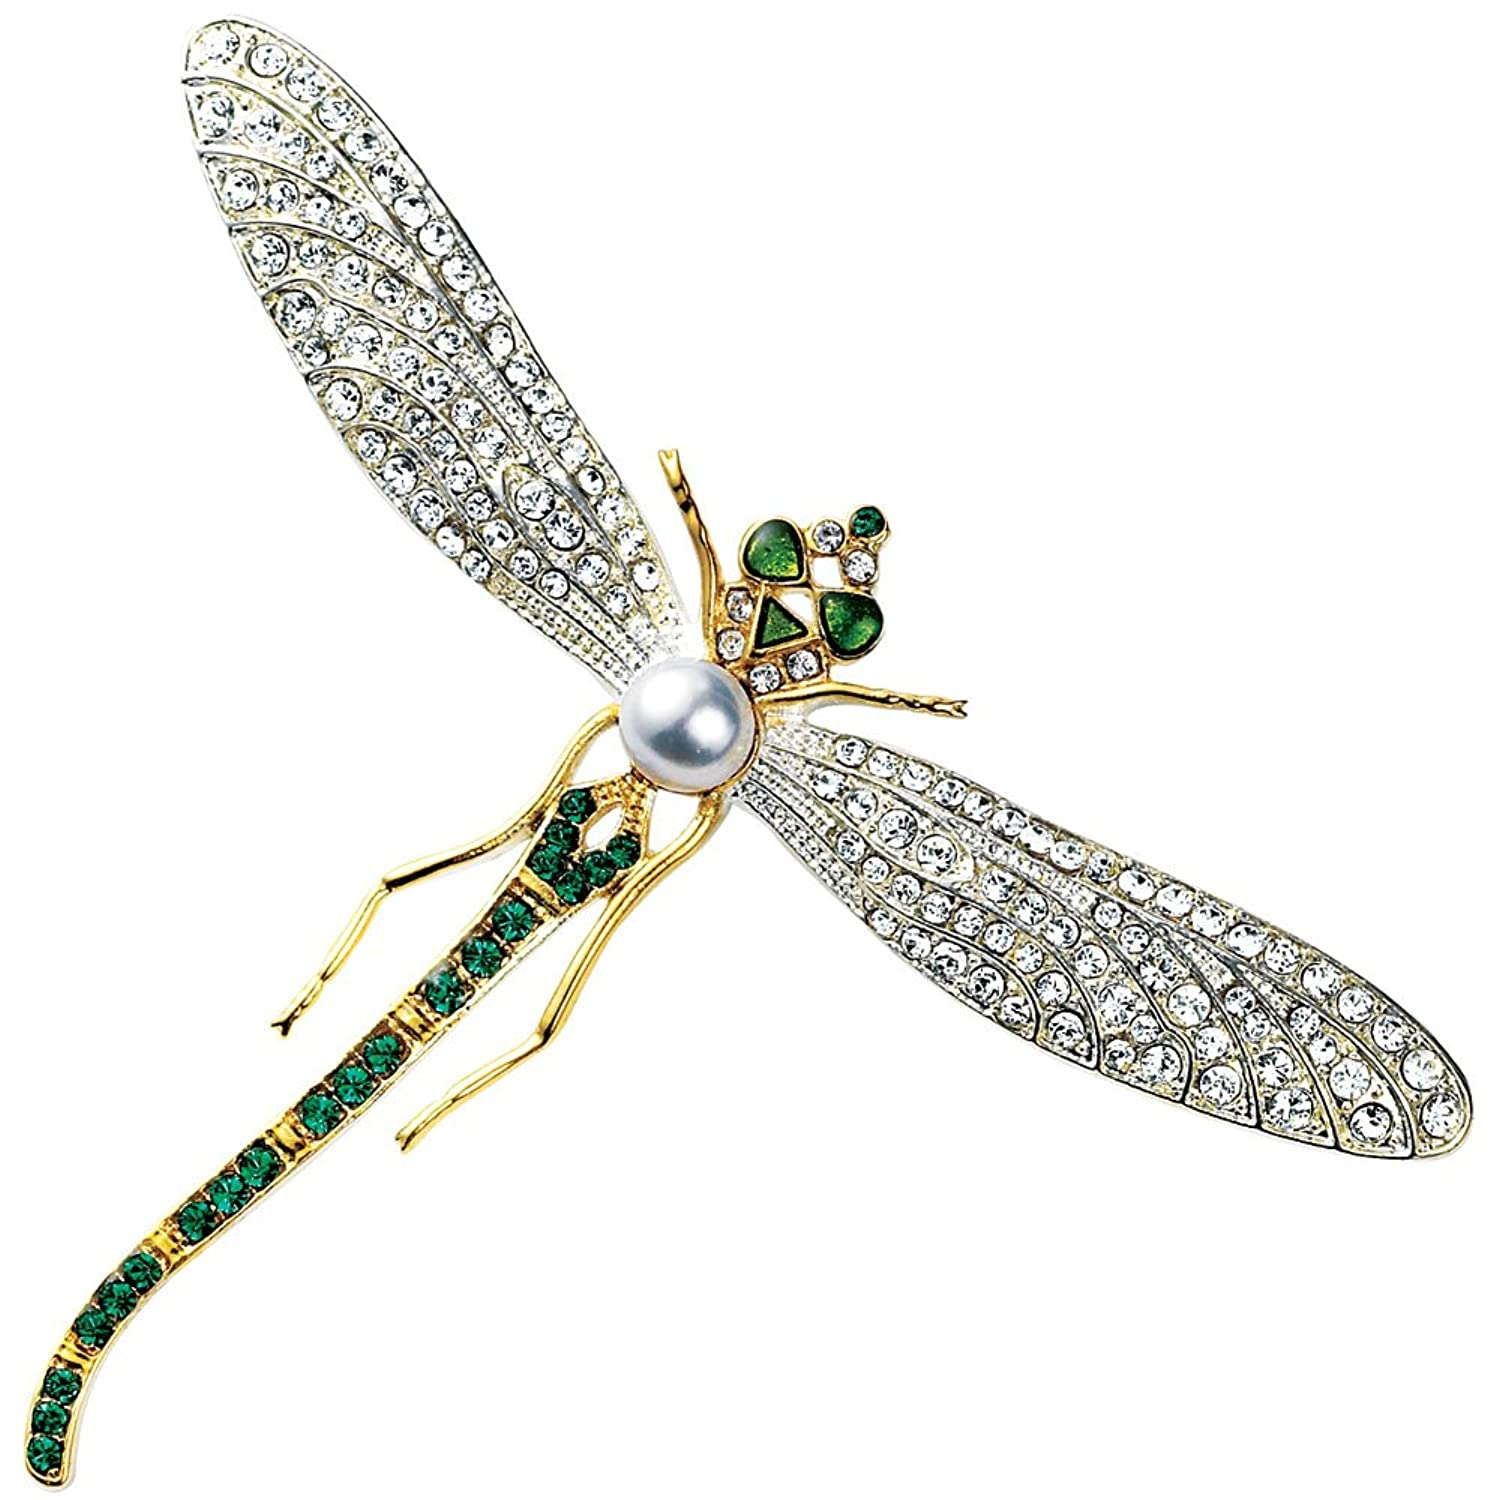 Faux Diamond Brooch with Faux Emeralds & Pearl Costume Jewelry Dragonfly Brooch